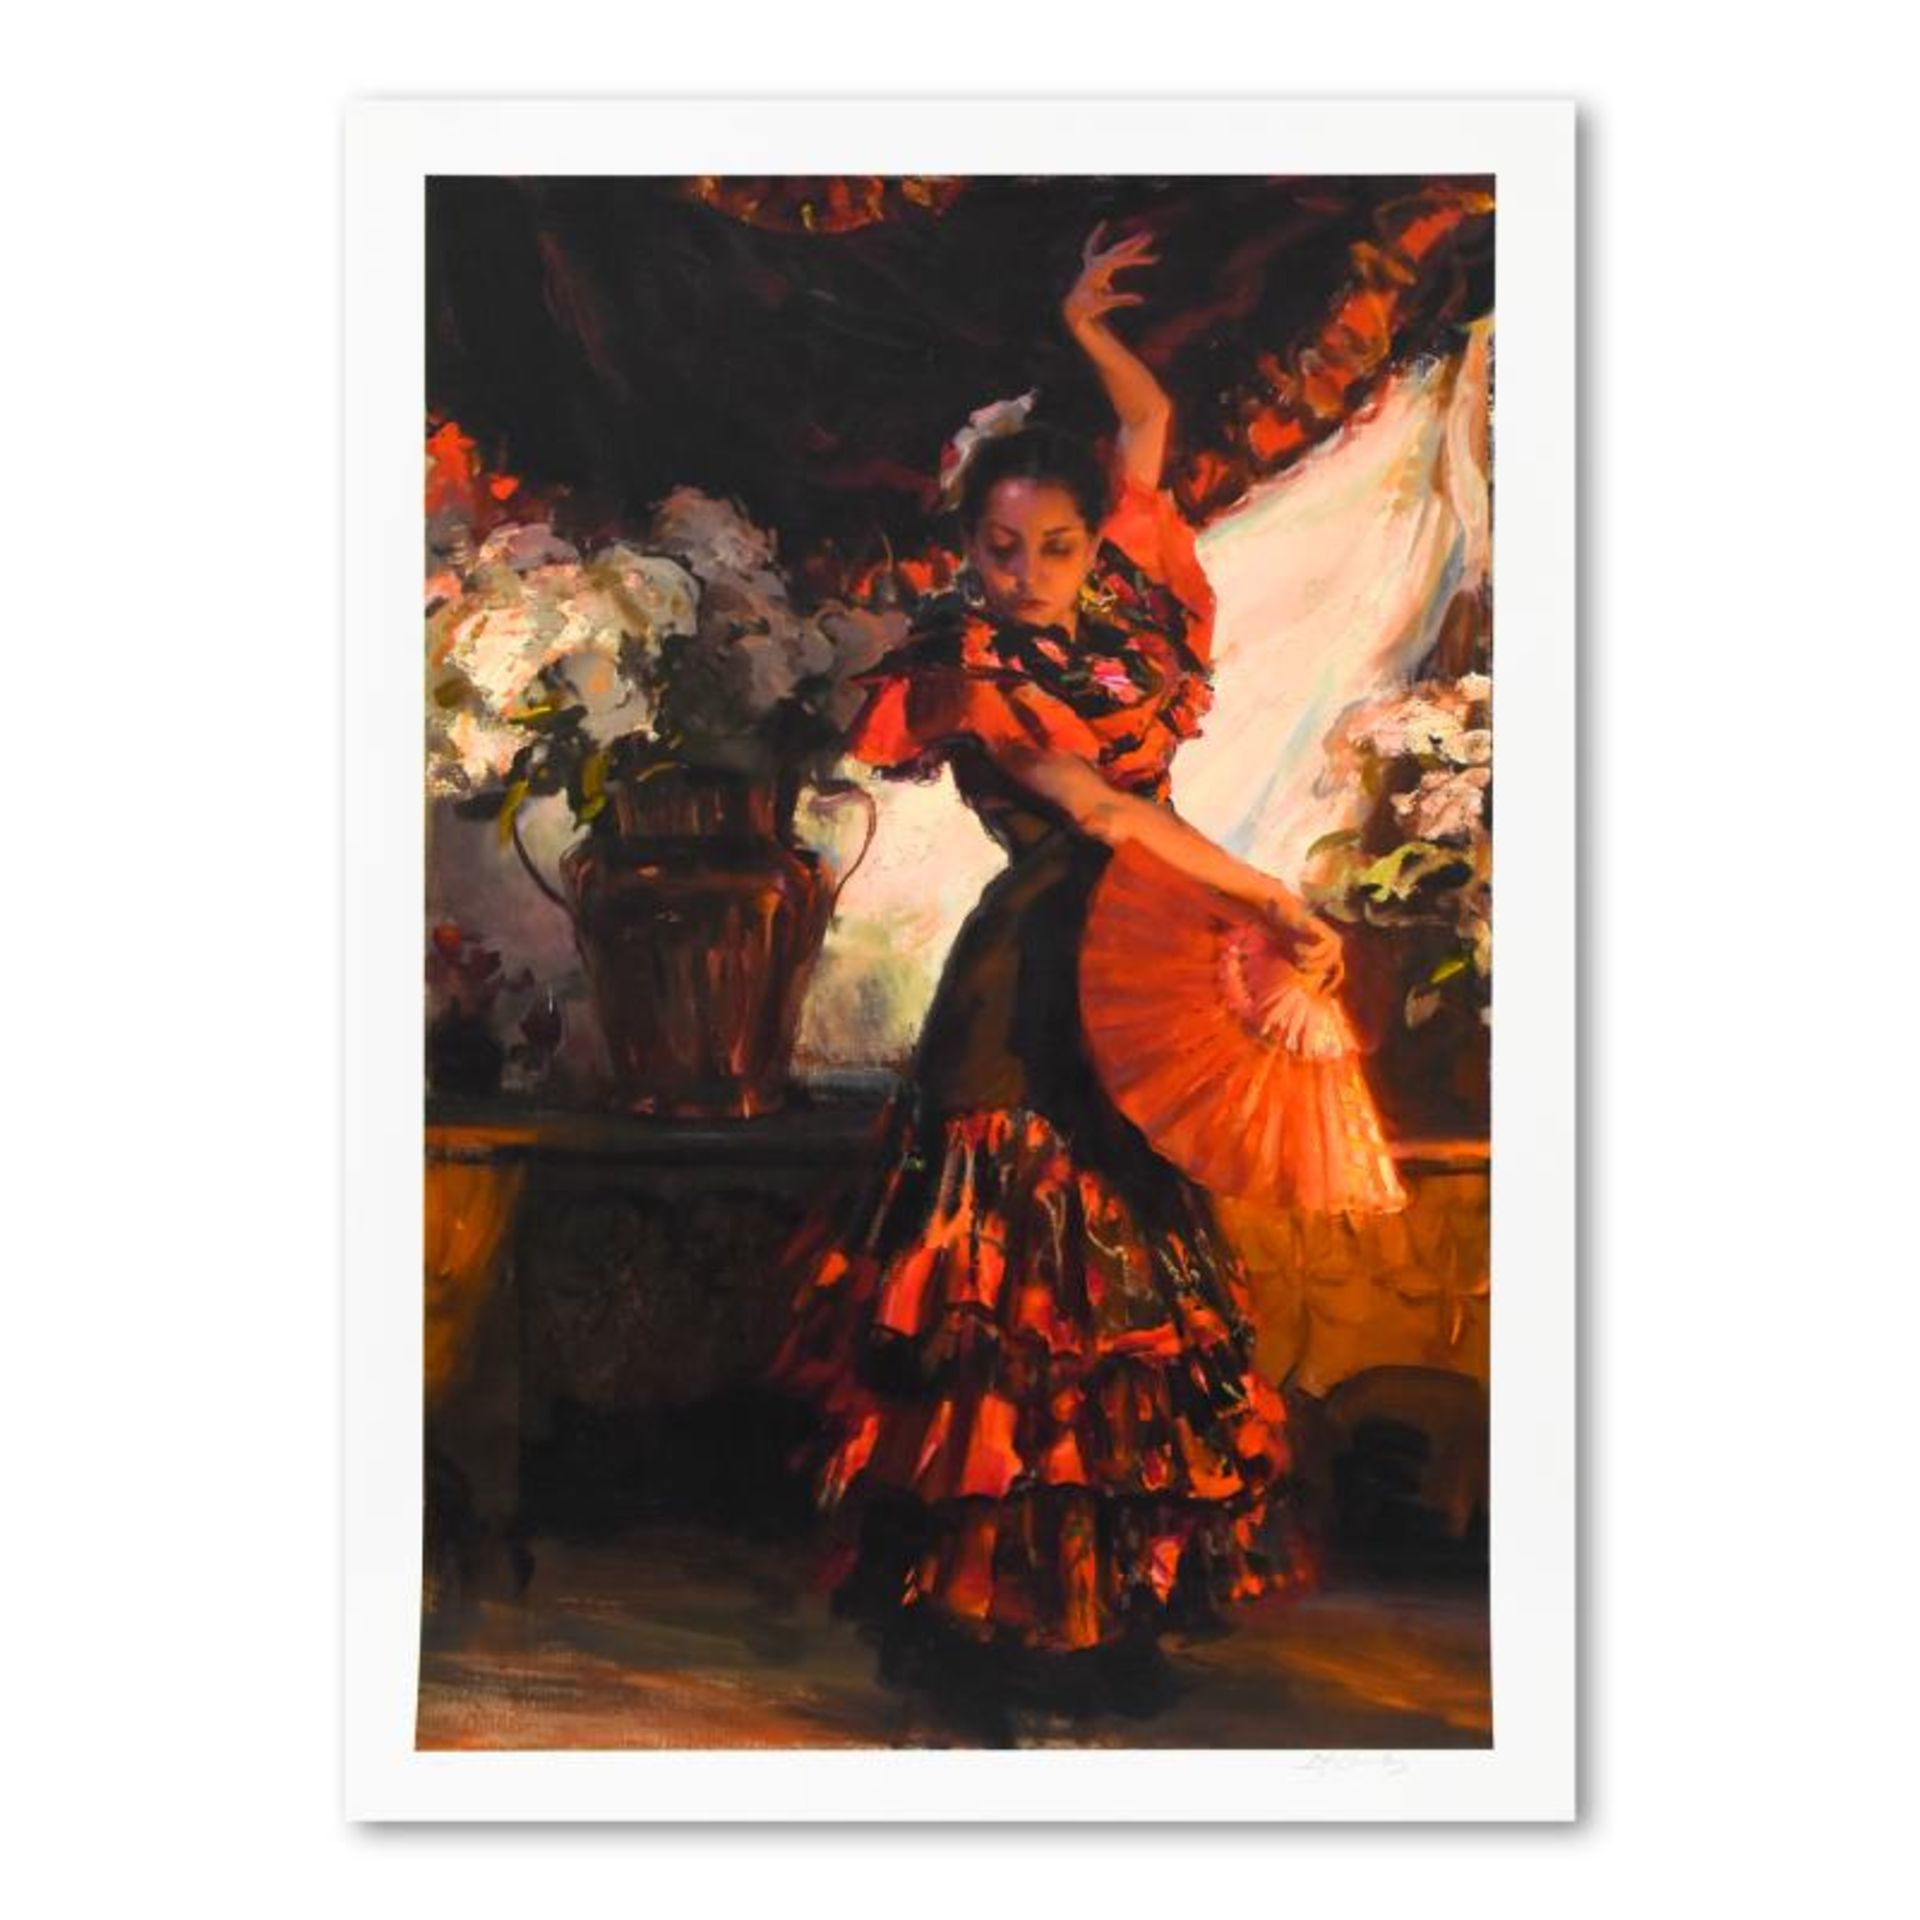 """Dan Gerhartz, """"Viva Flamenco"""" Limited Edition, Numbered and Hand Signed with Let"""